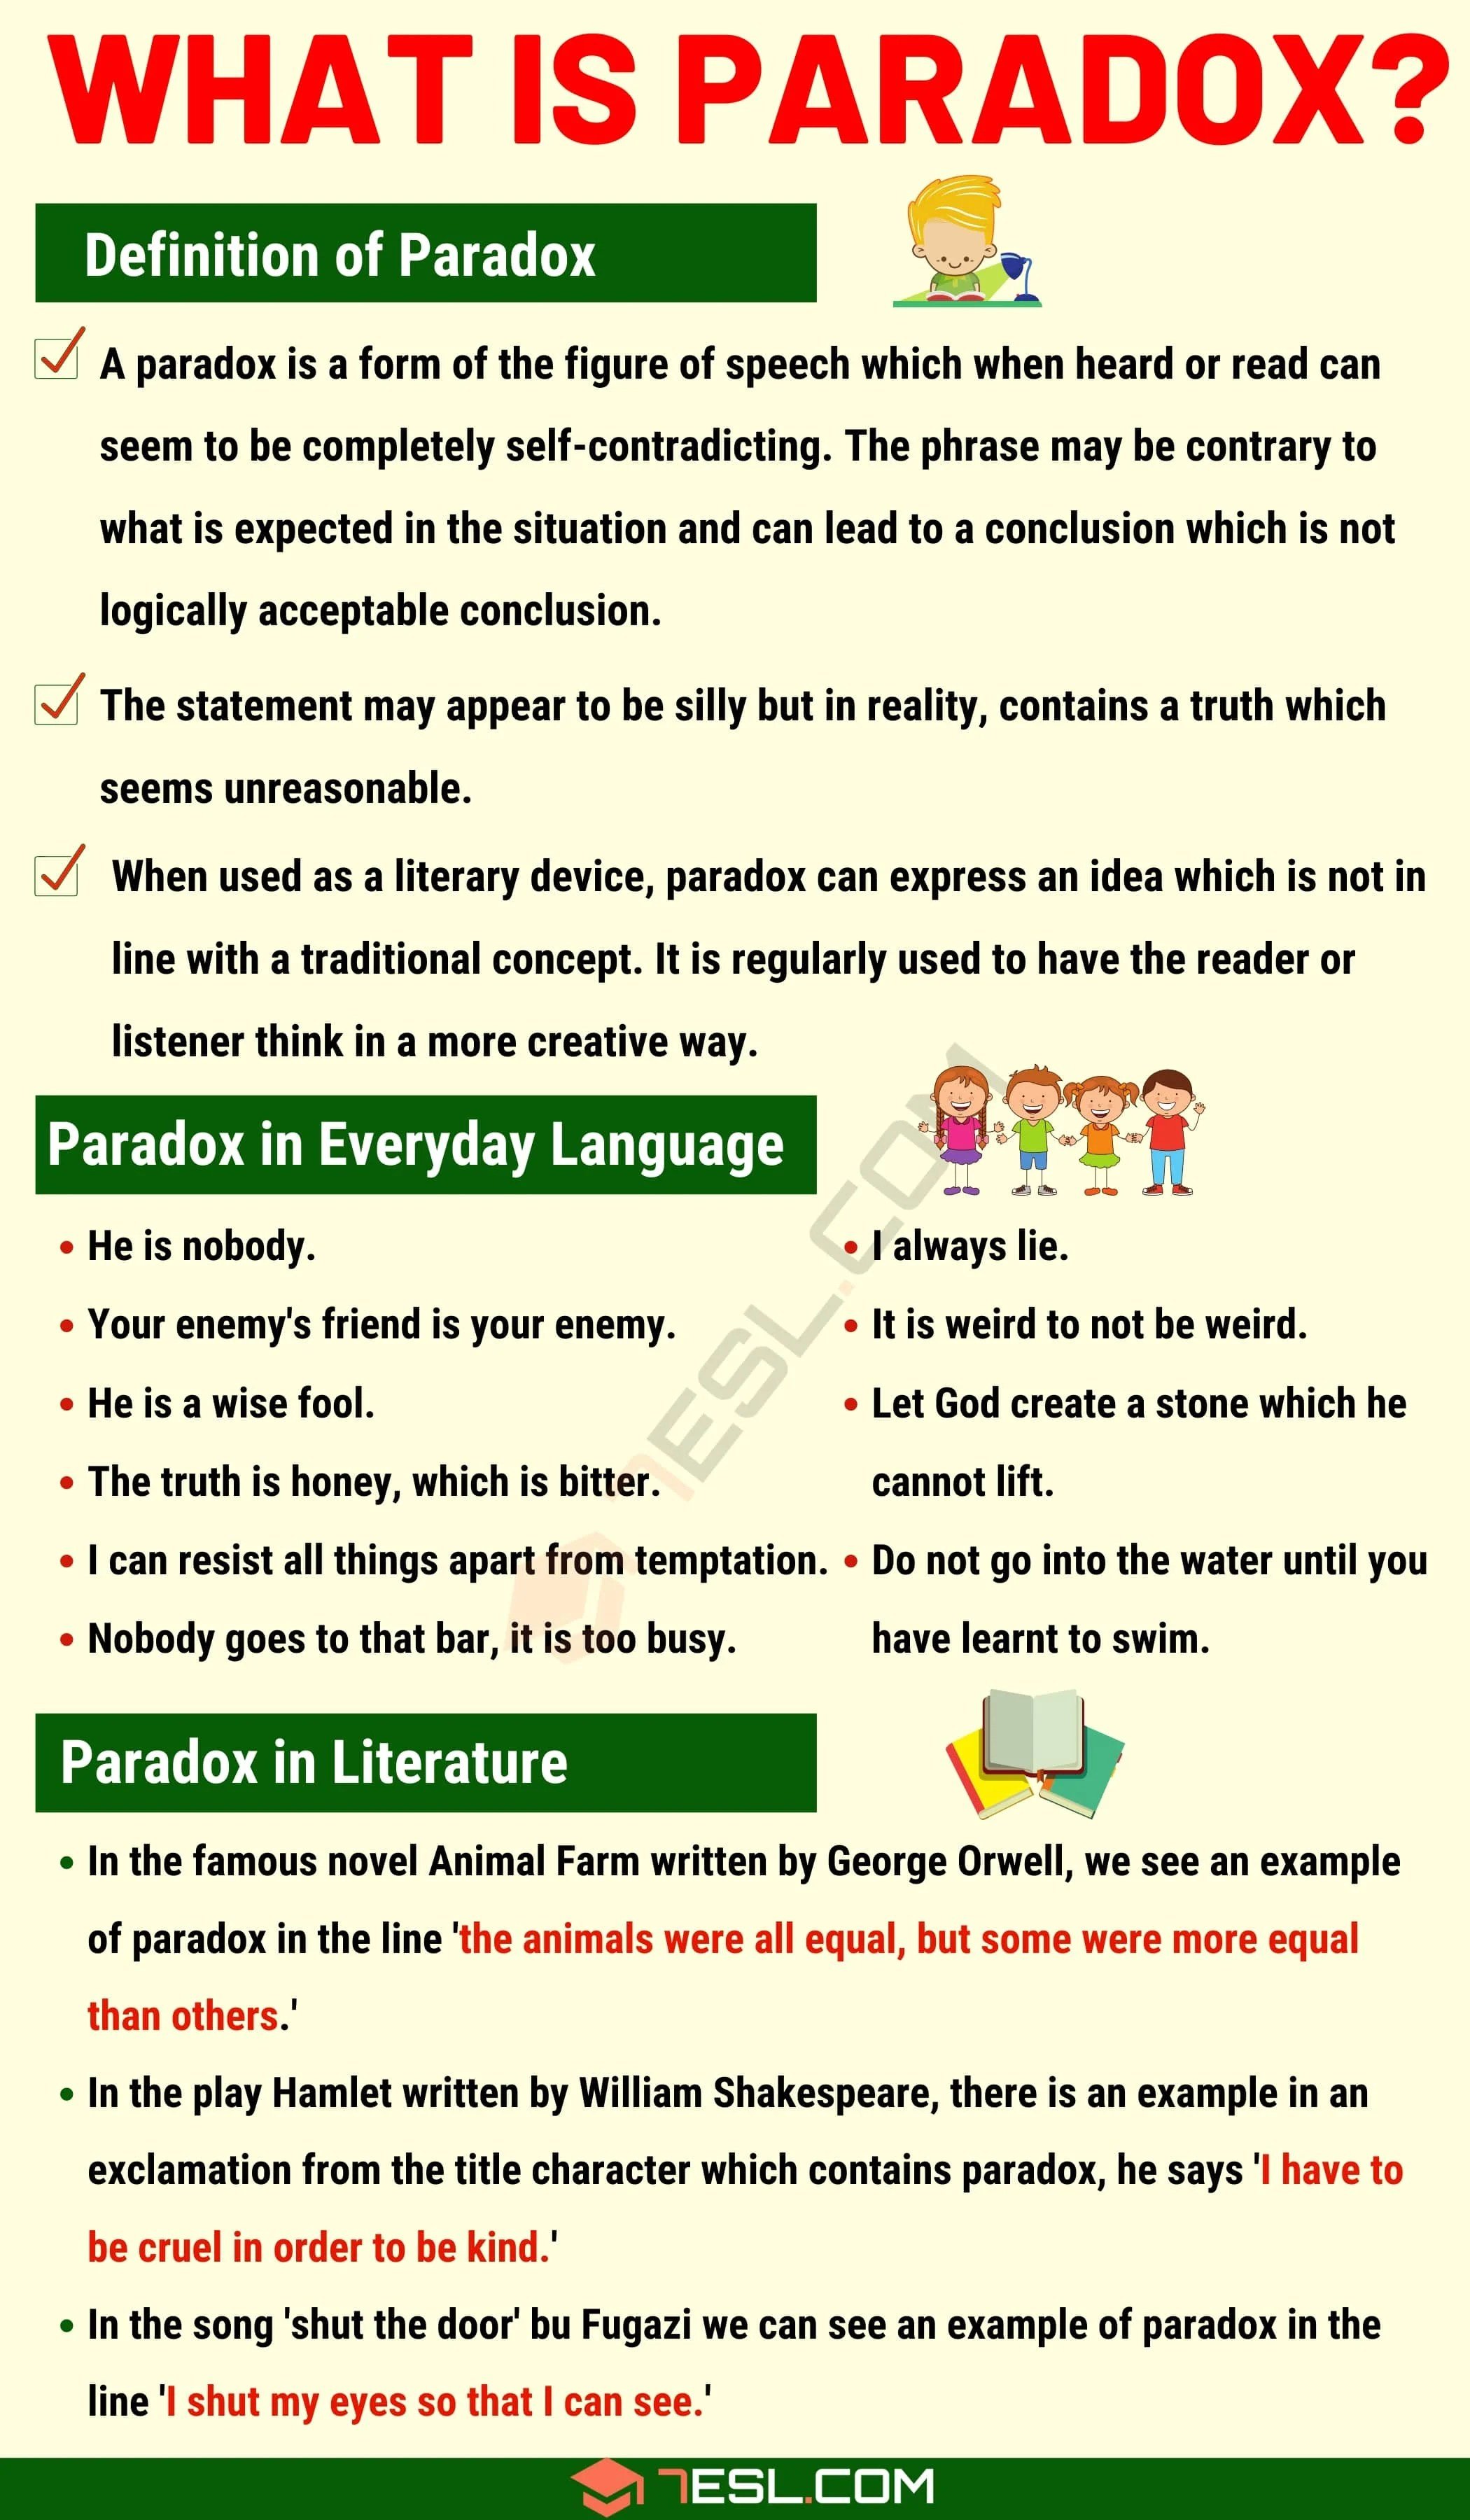 Paradox Definition And Examples Of Paradox In Speech And